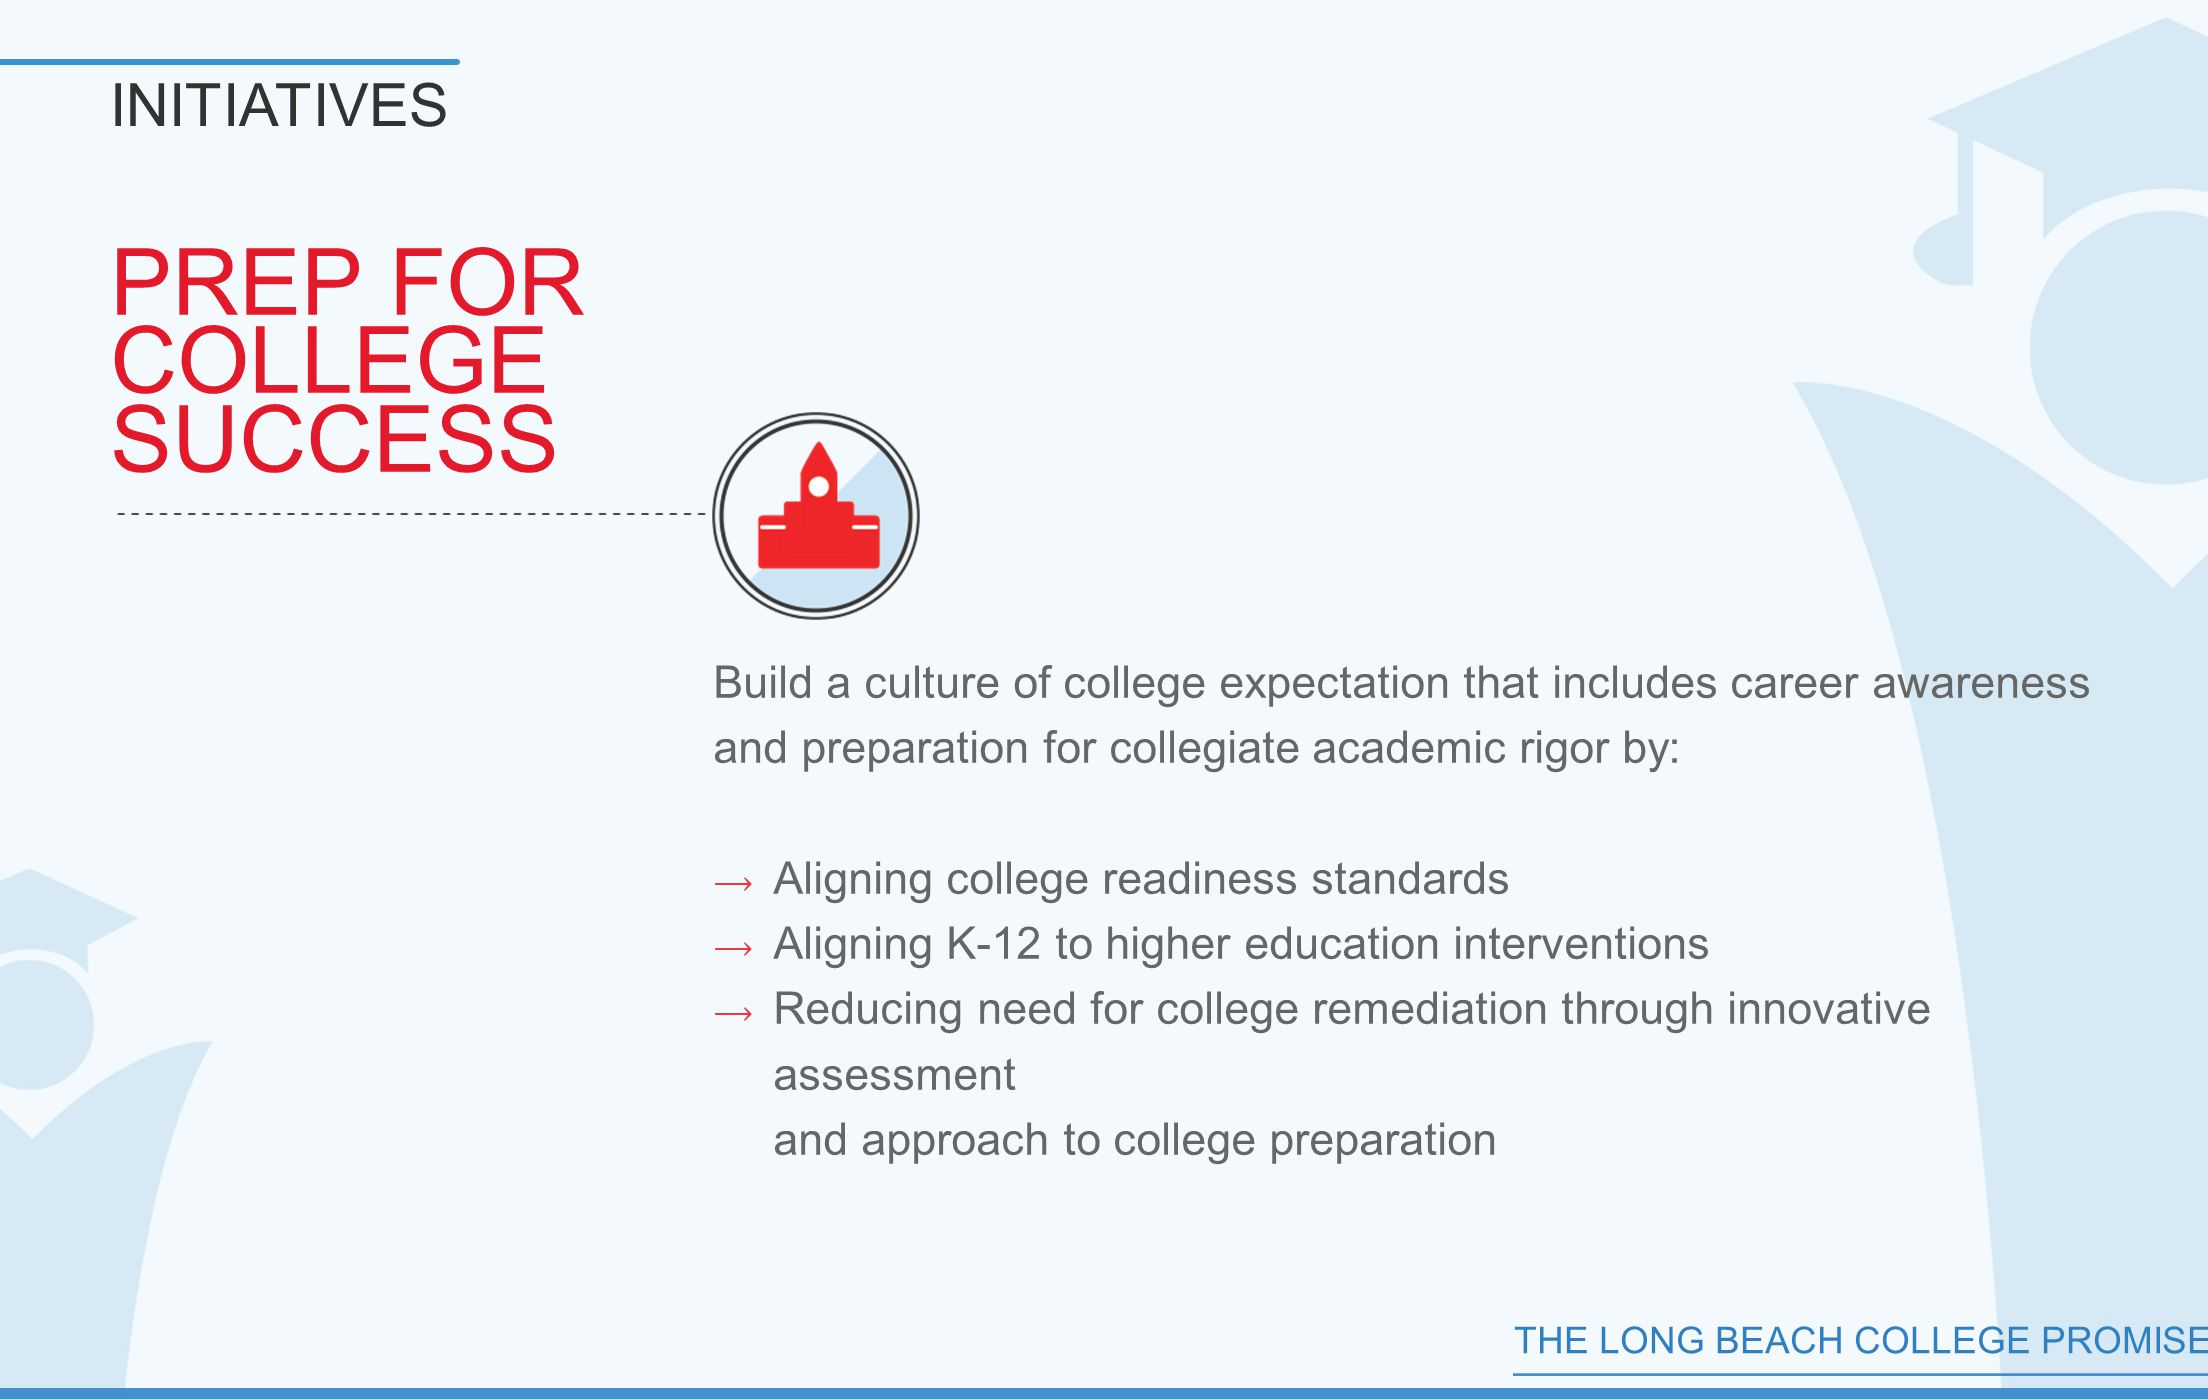 THE LONG BEACH COLLEGE PROMISE PREP FOR COLLEGE SUCCESS INITIATIVES Build a culture of college expectation that includes career awareness and preparation for collegiate academic rigor by:  Aligning college readiness standards  Aligning K-12 to higher education interventions  Reducing need for college remediation through innovative assessment and approach to college preparation